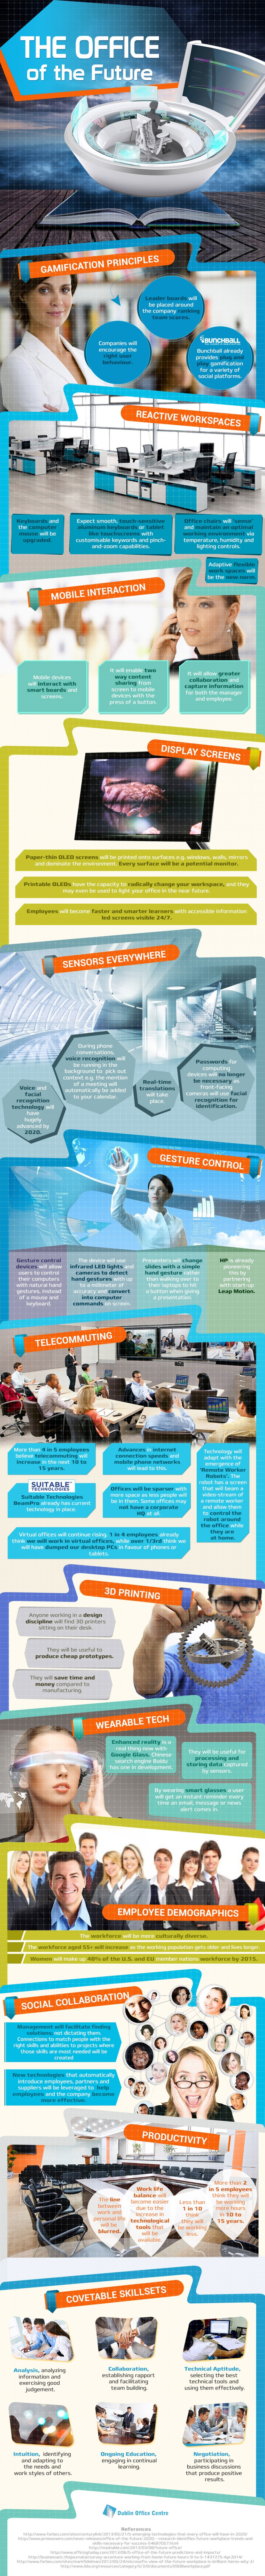 The Office of the Future Infographic